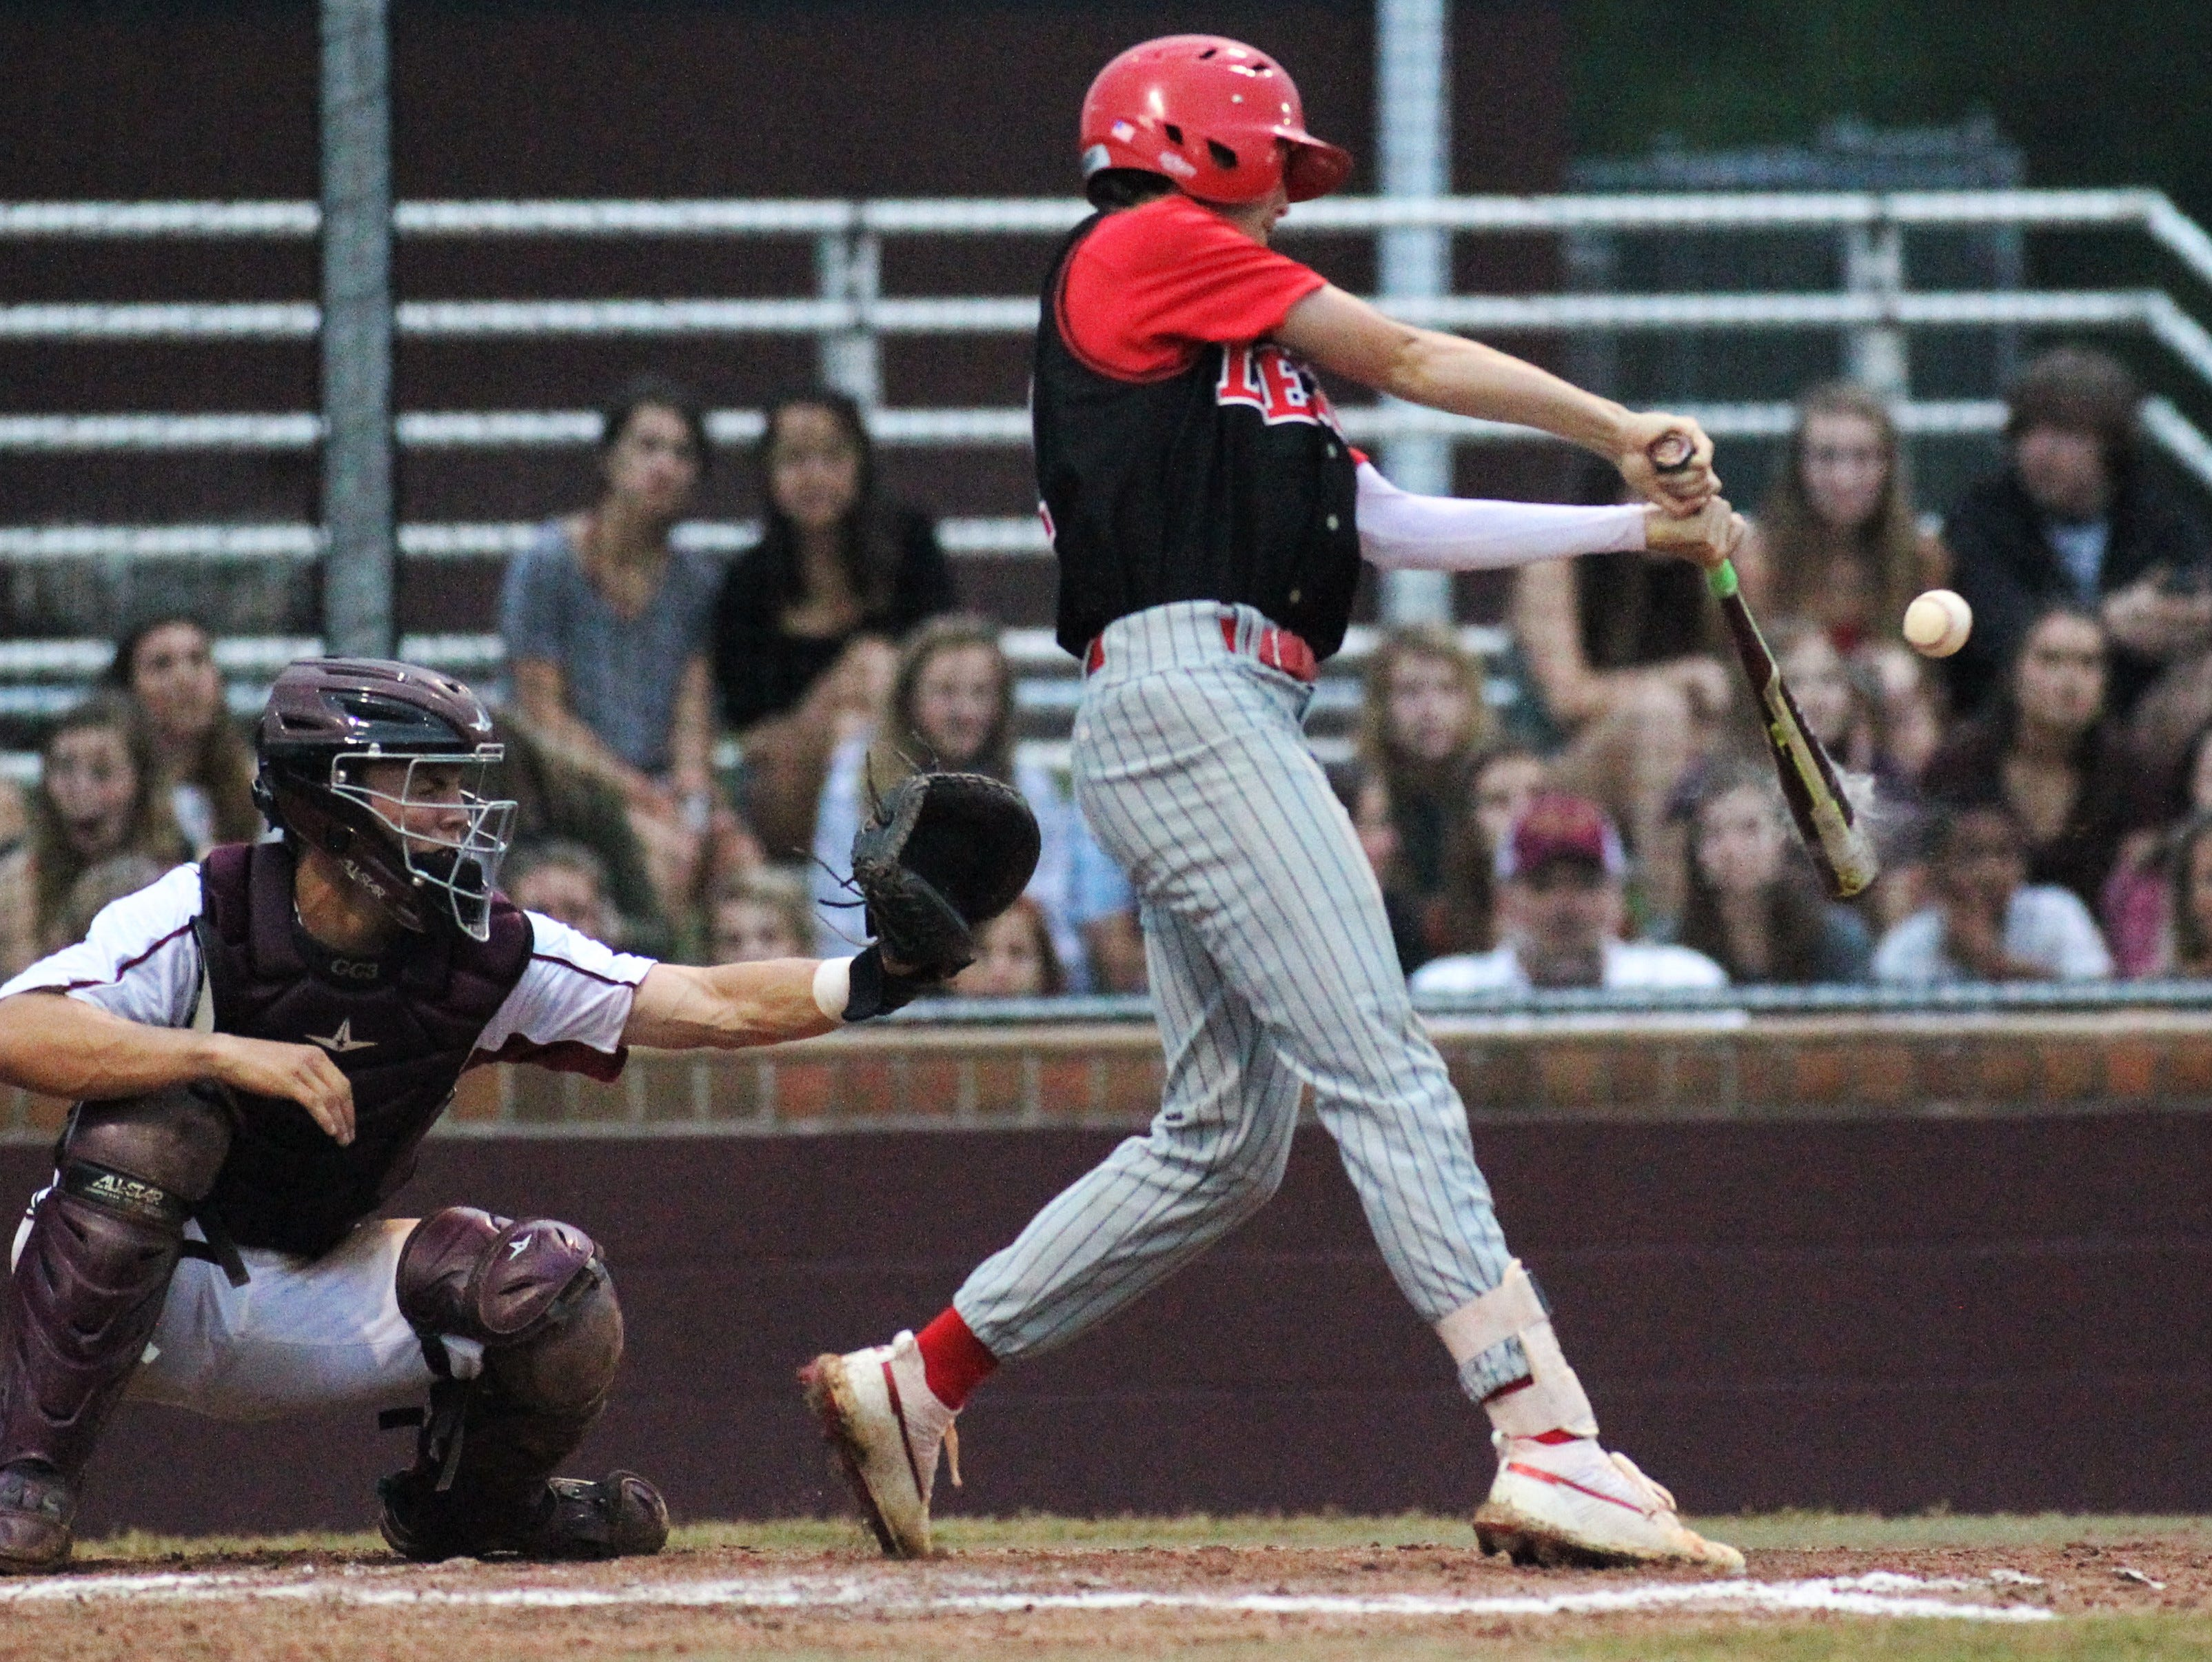 Leon junior Garrett Green bats as Chiles won an 11-6 home game against Leon on Friday, April 5, 2019, to force a season split. The Lions won 3-0 earlier in the week.